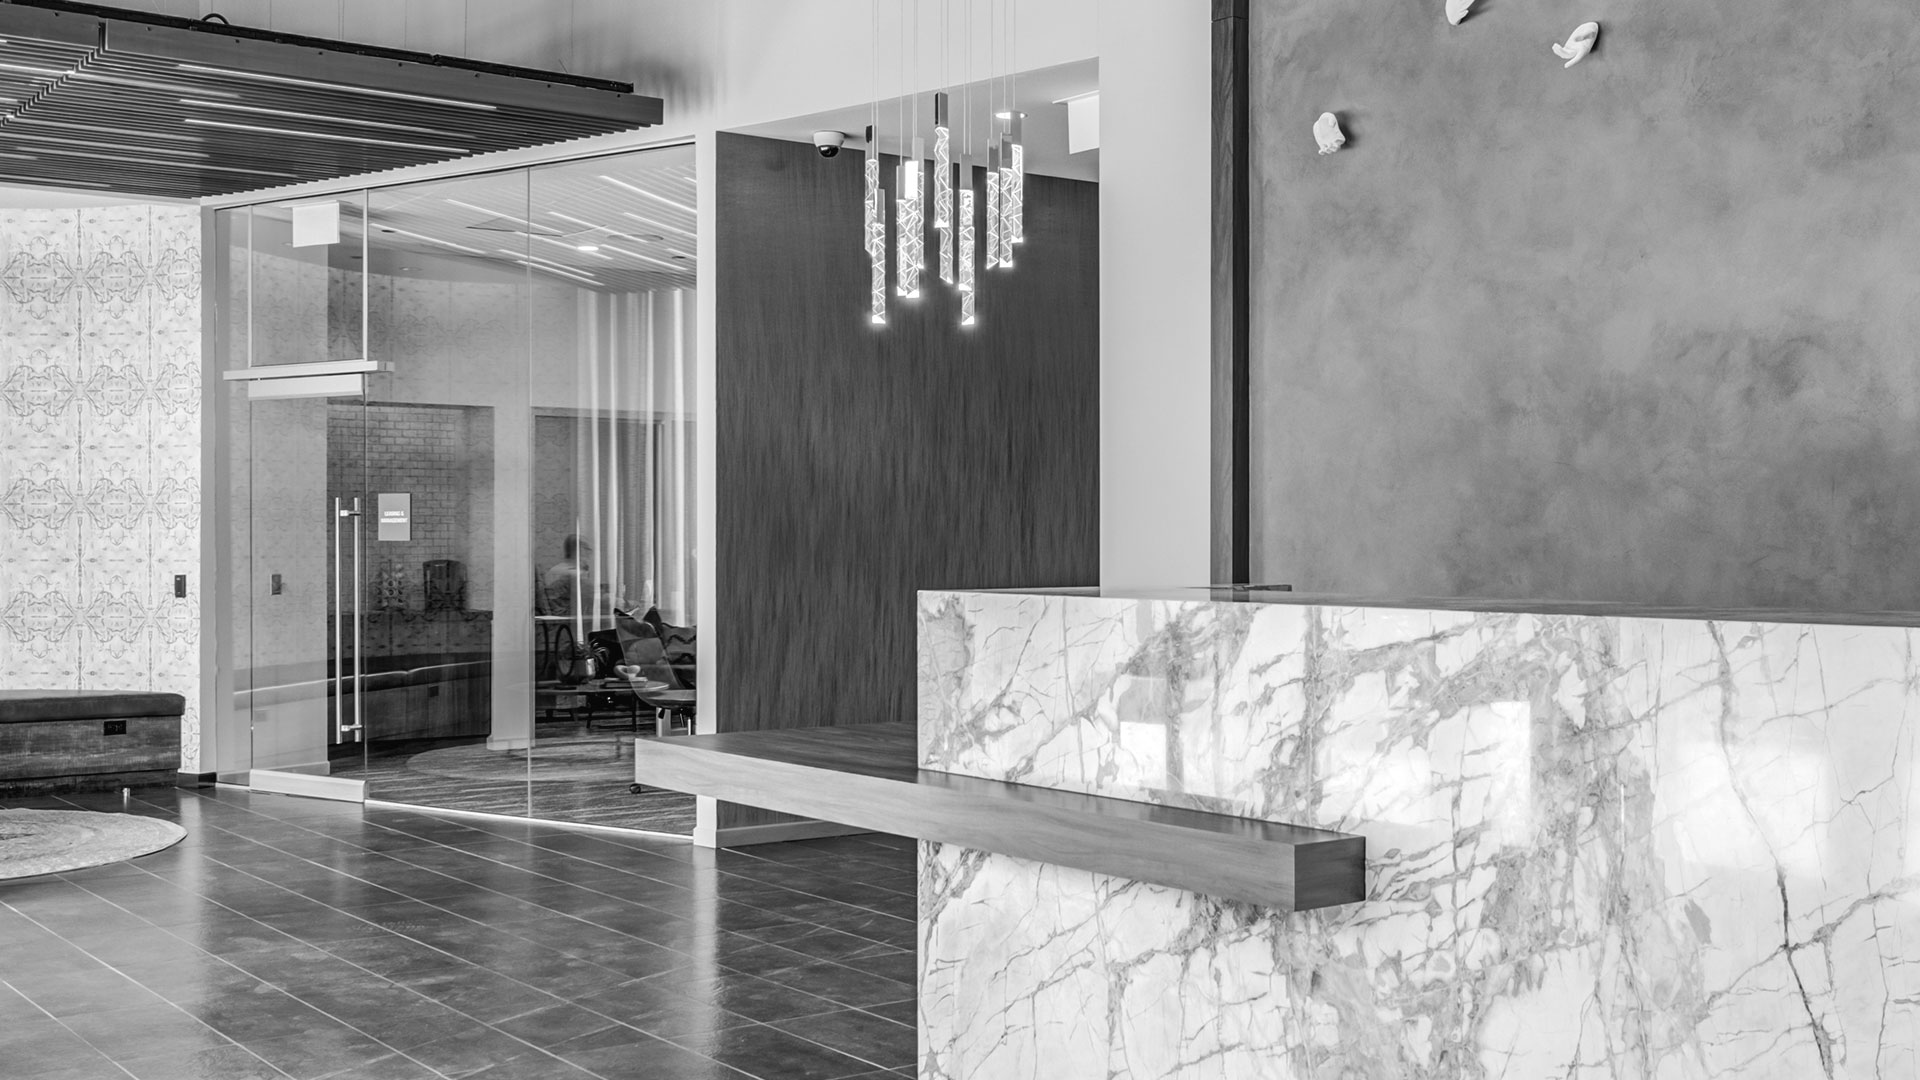 Looking through the lobby of Aspire Residences. A stone desk in the foreground with a modern light fixture above. Offices are seen in the background.